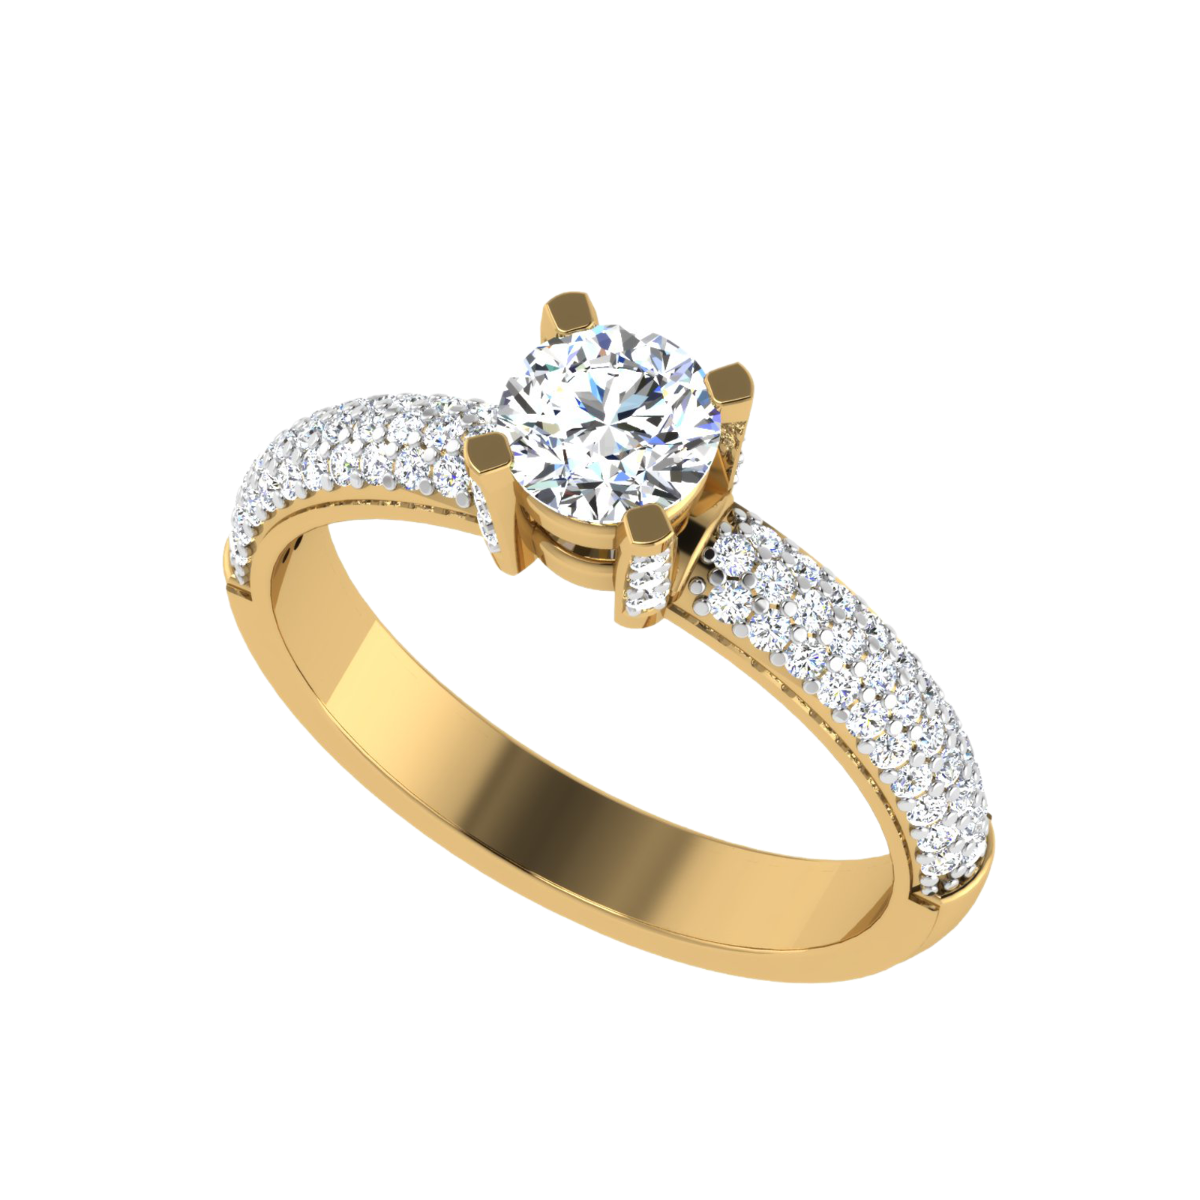 The Stunning Solitaire Diamond Ring